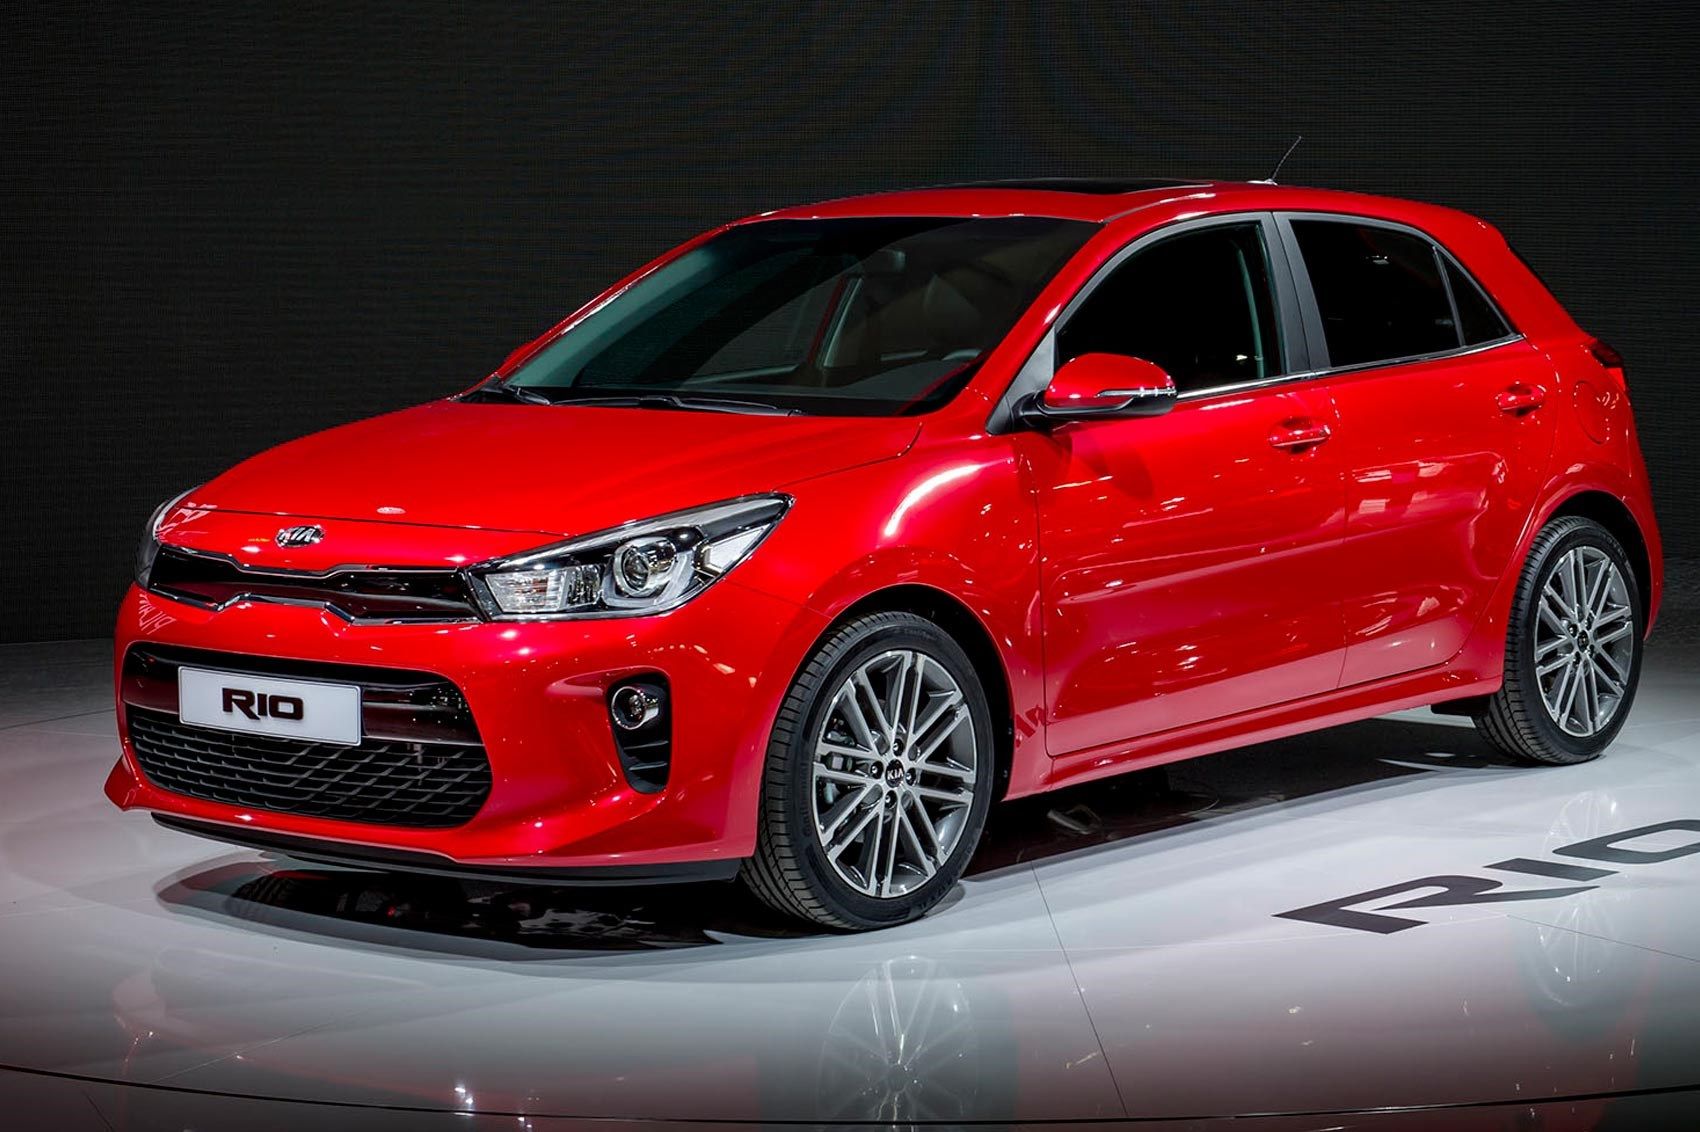 New Kia Rio revealed: latest on Kia's upcoming Fiesta rival by CAR Magazine